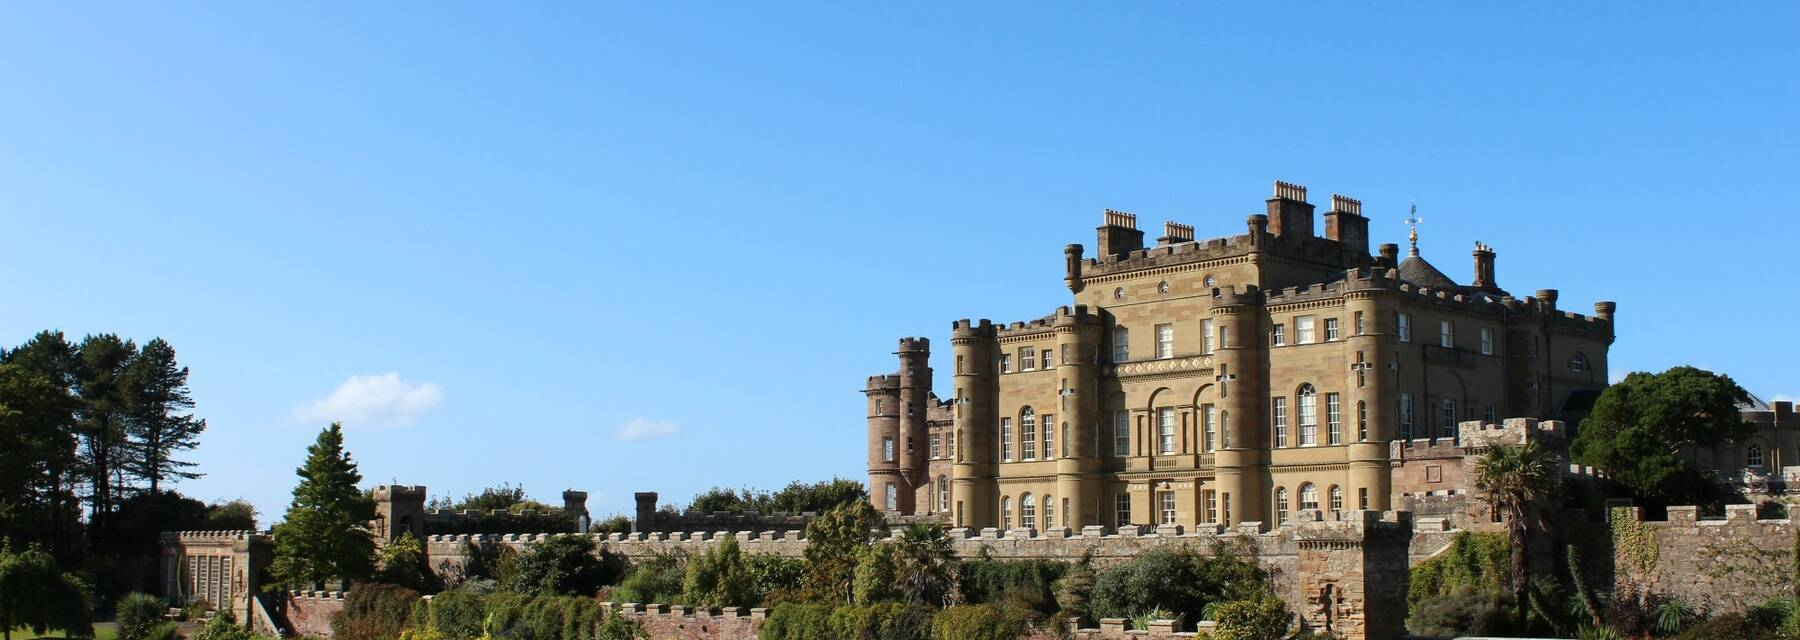 Culzean Castle from the Fountain Court on a bright sunny day with not a cloud in the sky.